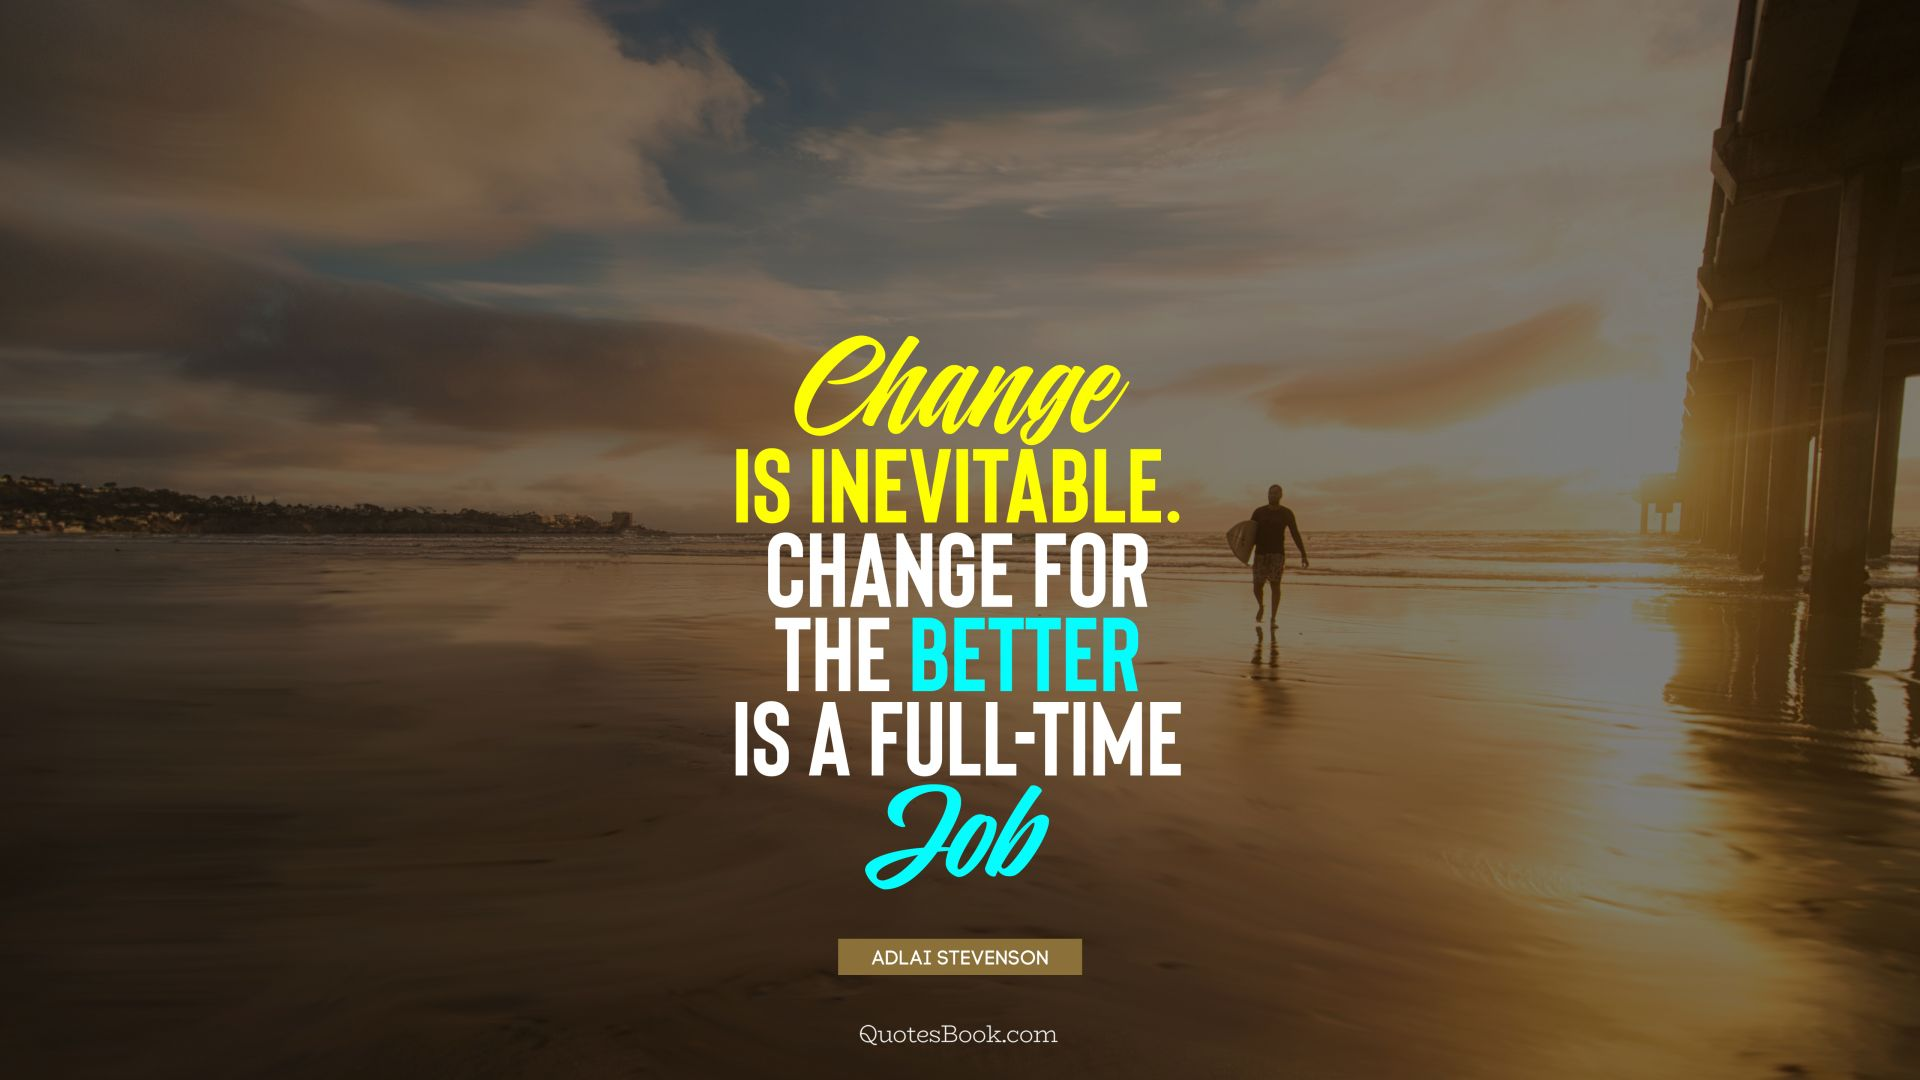 Change is inevitable. Change for the better is a full-time job. - Quote by Adlai Stevenson